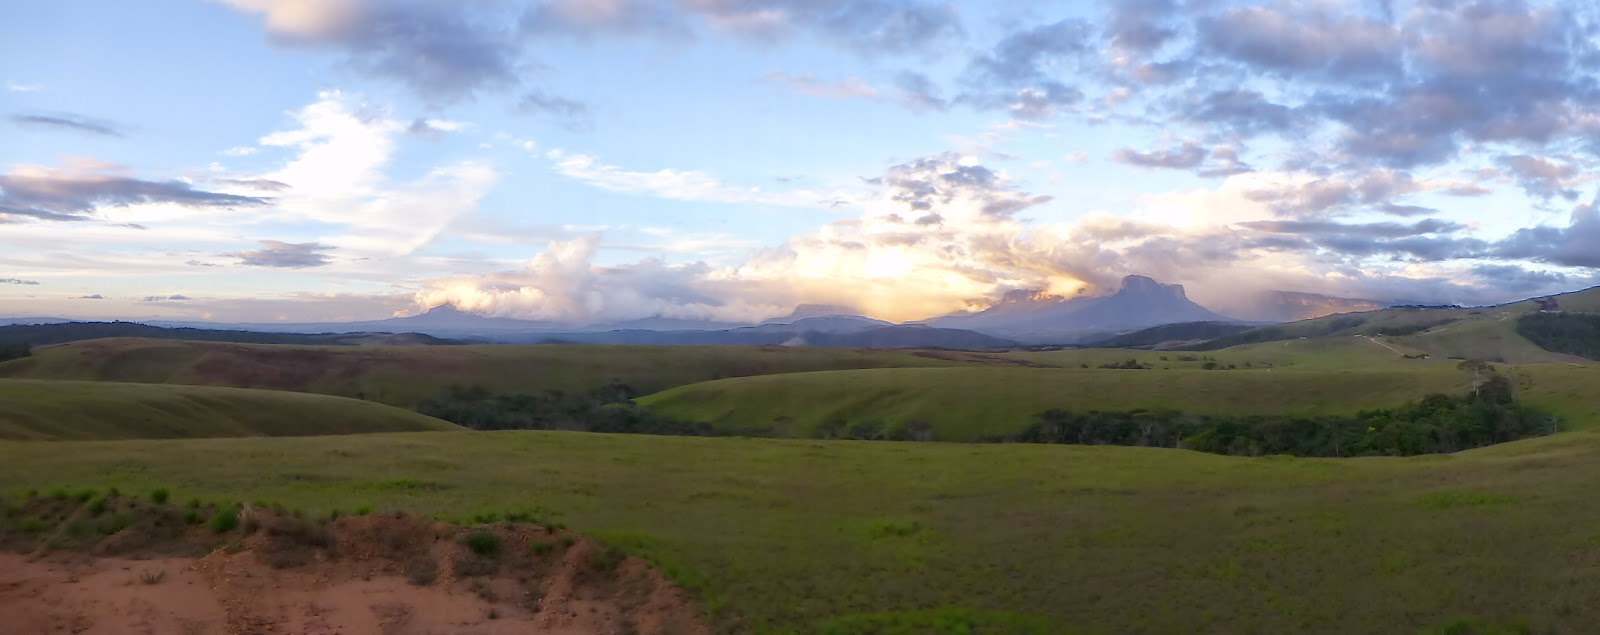 Here's a selection of photos from Venezuelas Gran Sabana, where we travelled 3 days on the dirt roads in spectacular surrounds and bush camped. The last photo is the most spectacular, click on it to do it justice.and finally....Venezuelas Gran Sabana O...